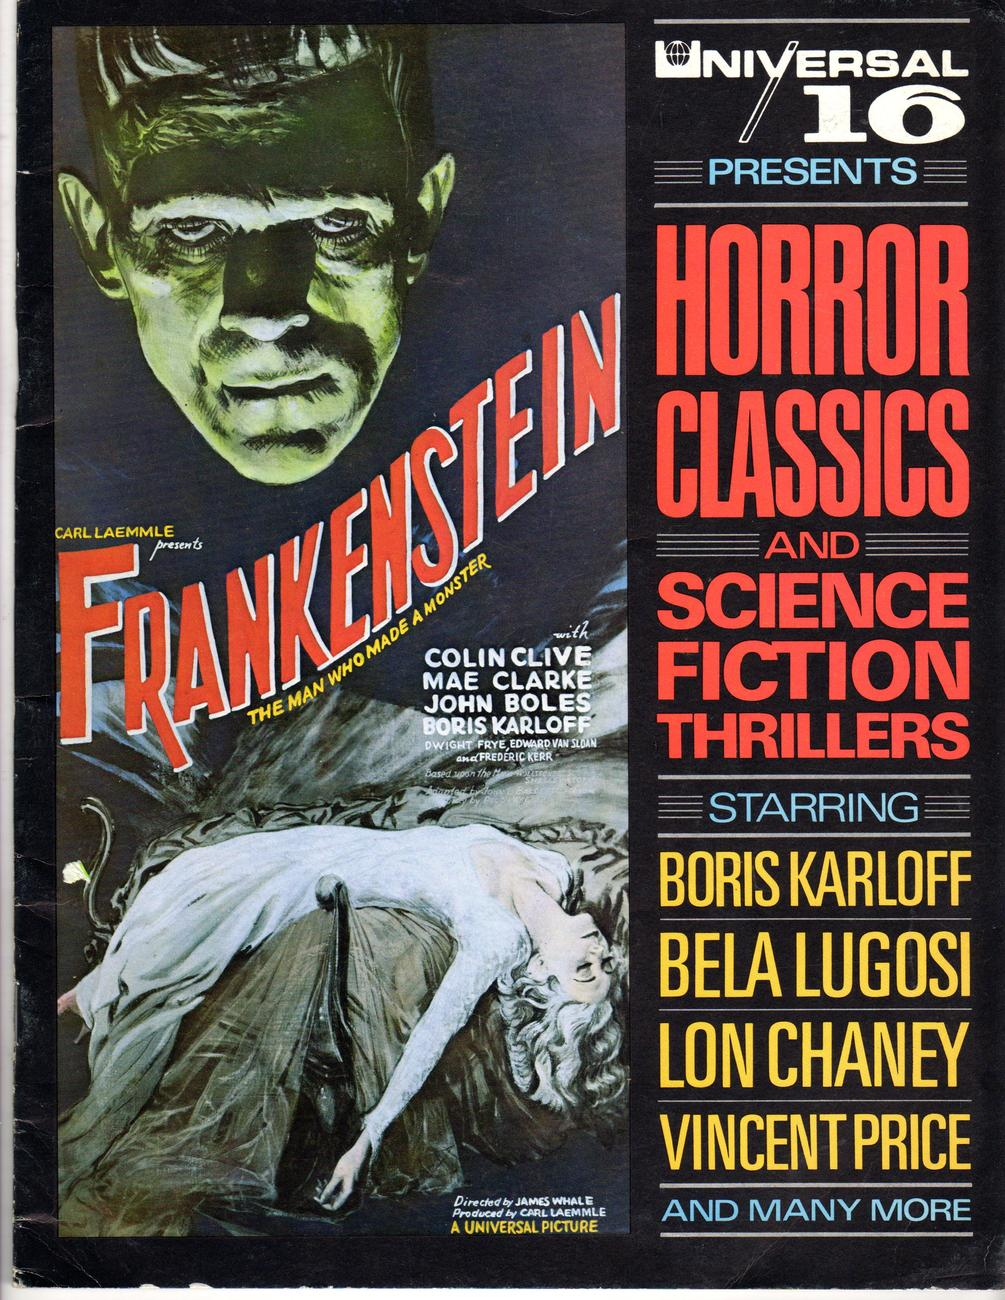 Universal 16 Presents :Horror Classics & Science Fiction Thrillers